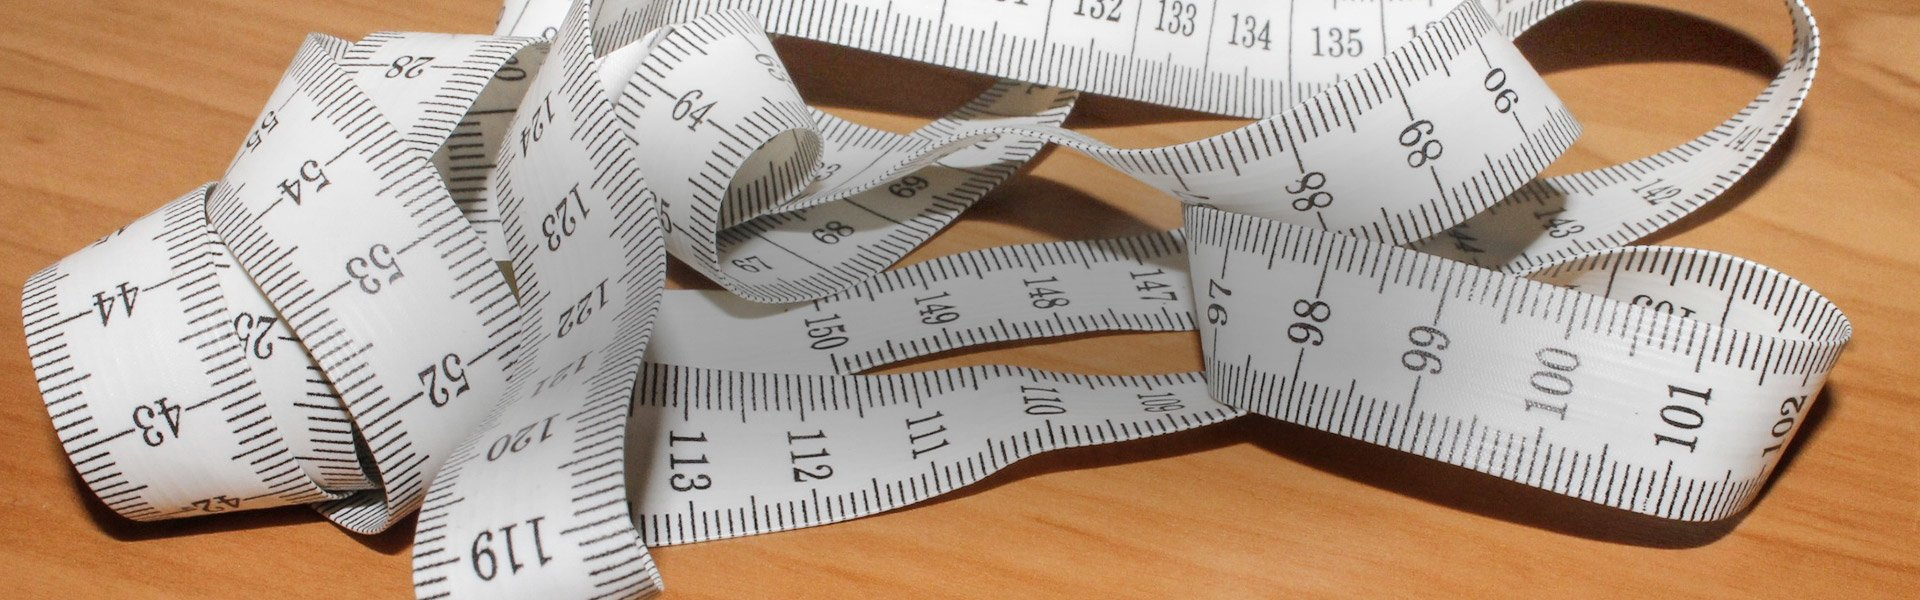 what are your ideal measurements